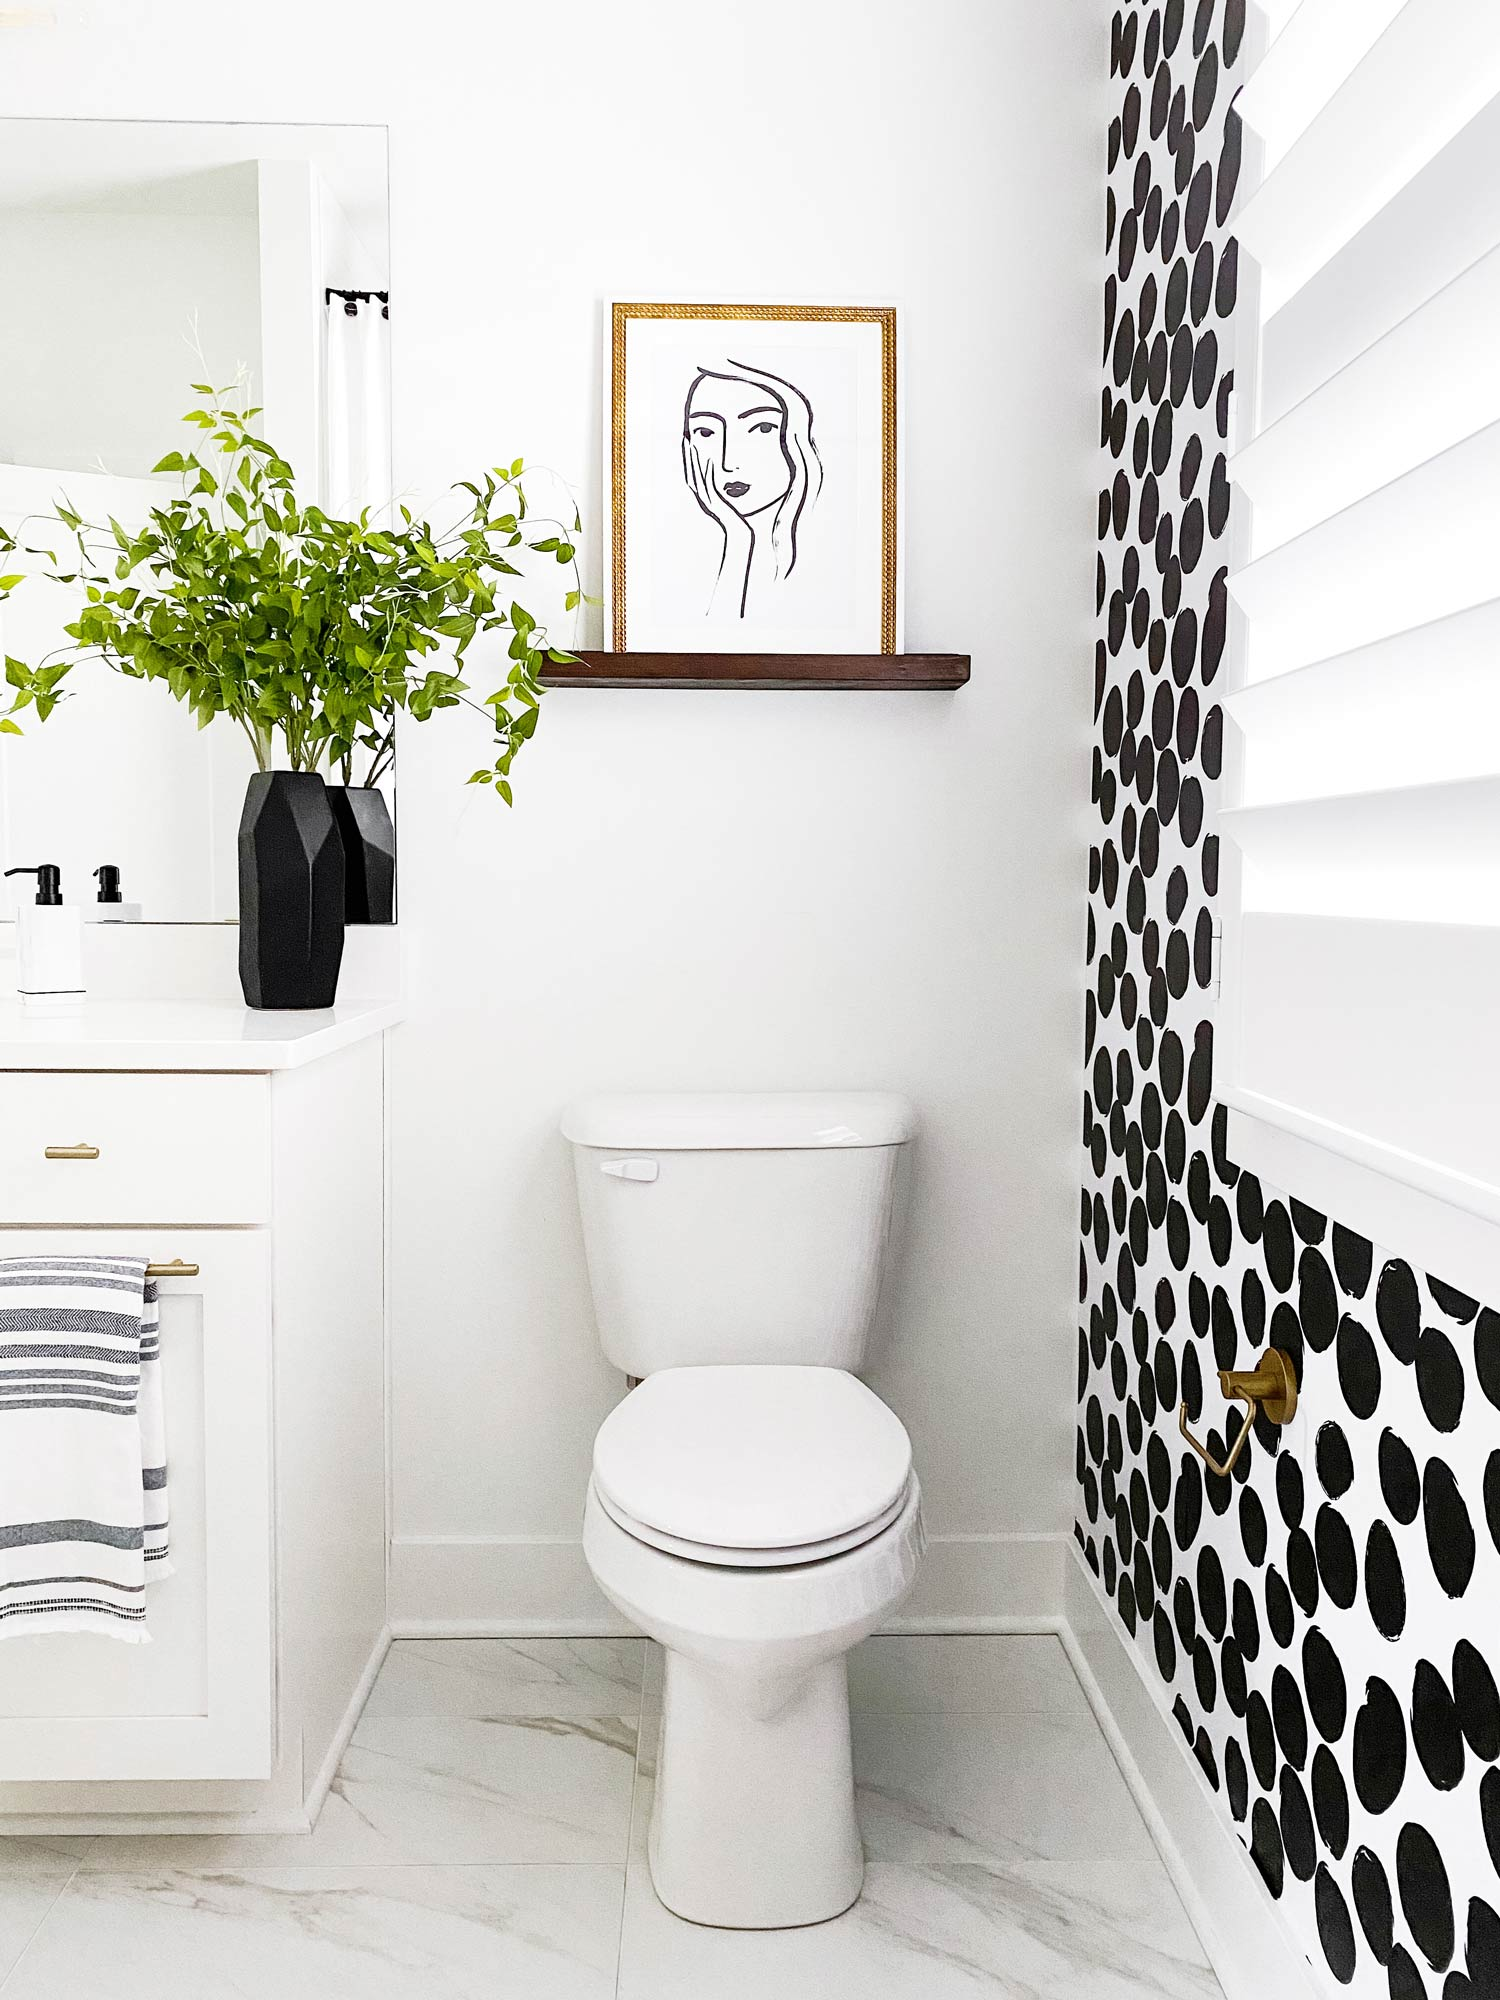 Interior design featuring black and white removable wallpaper